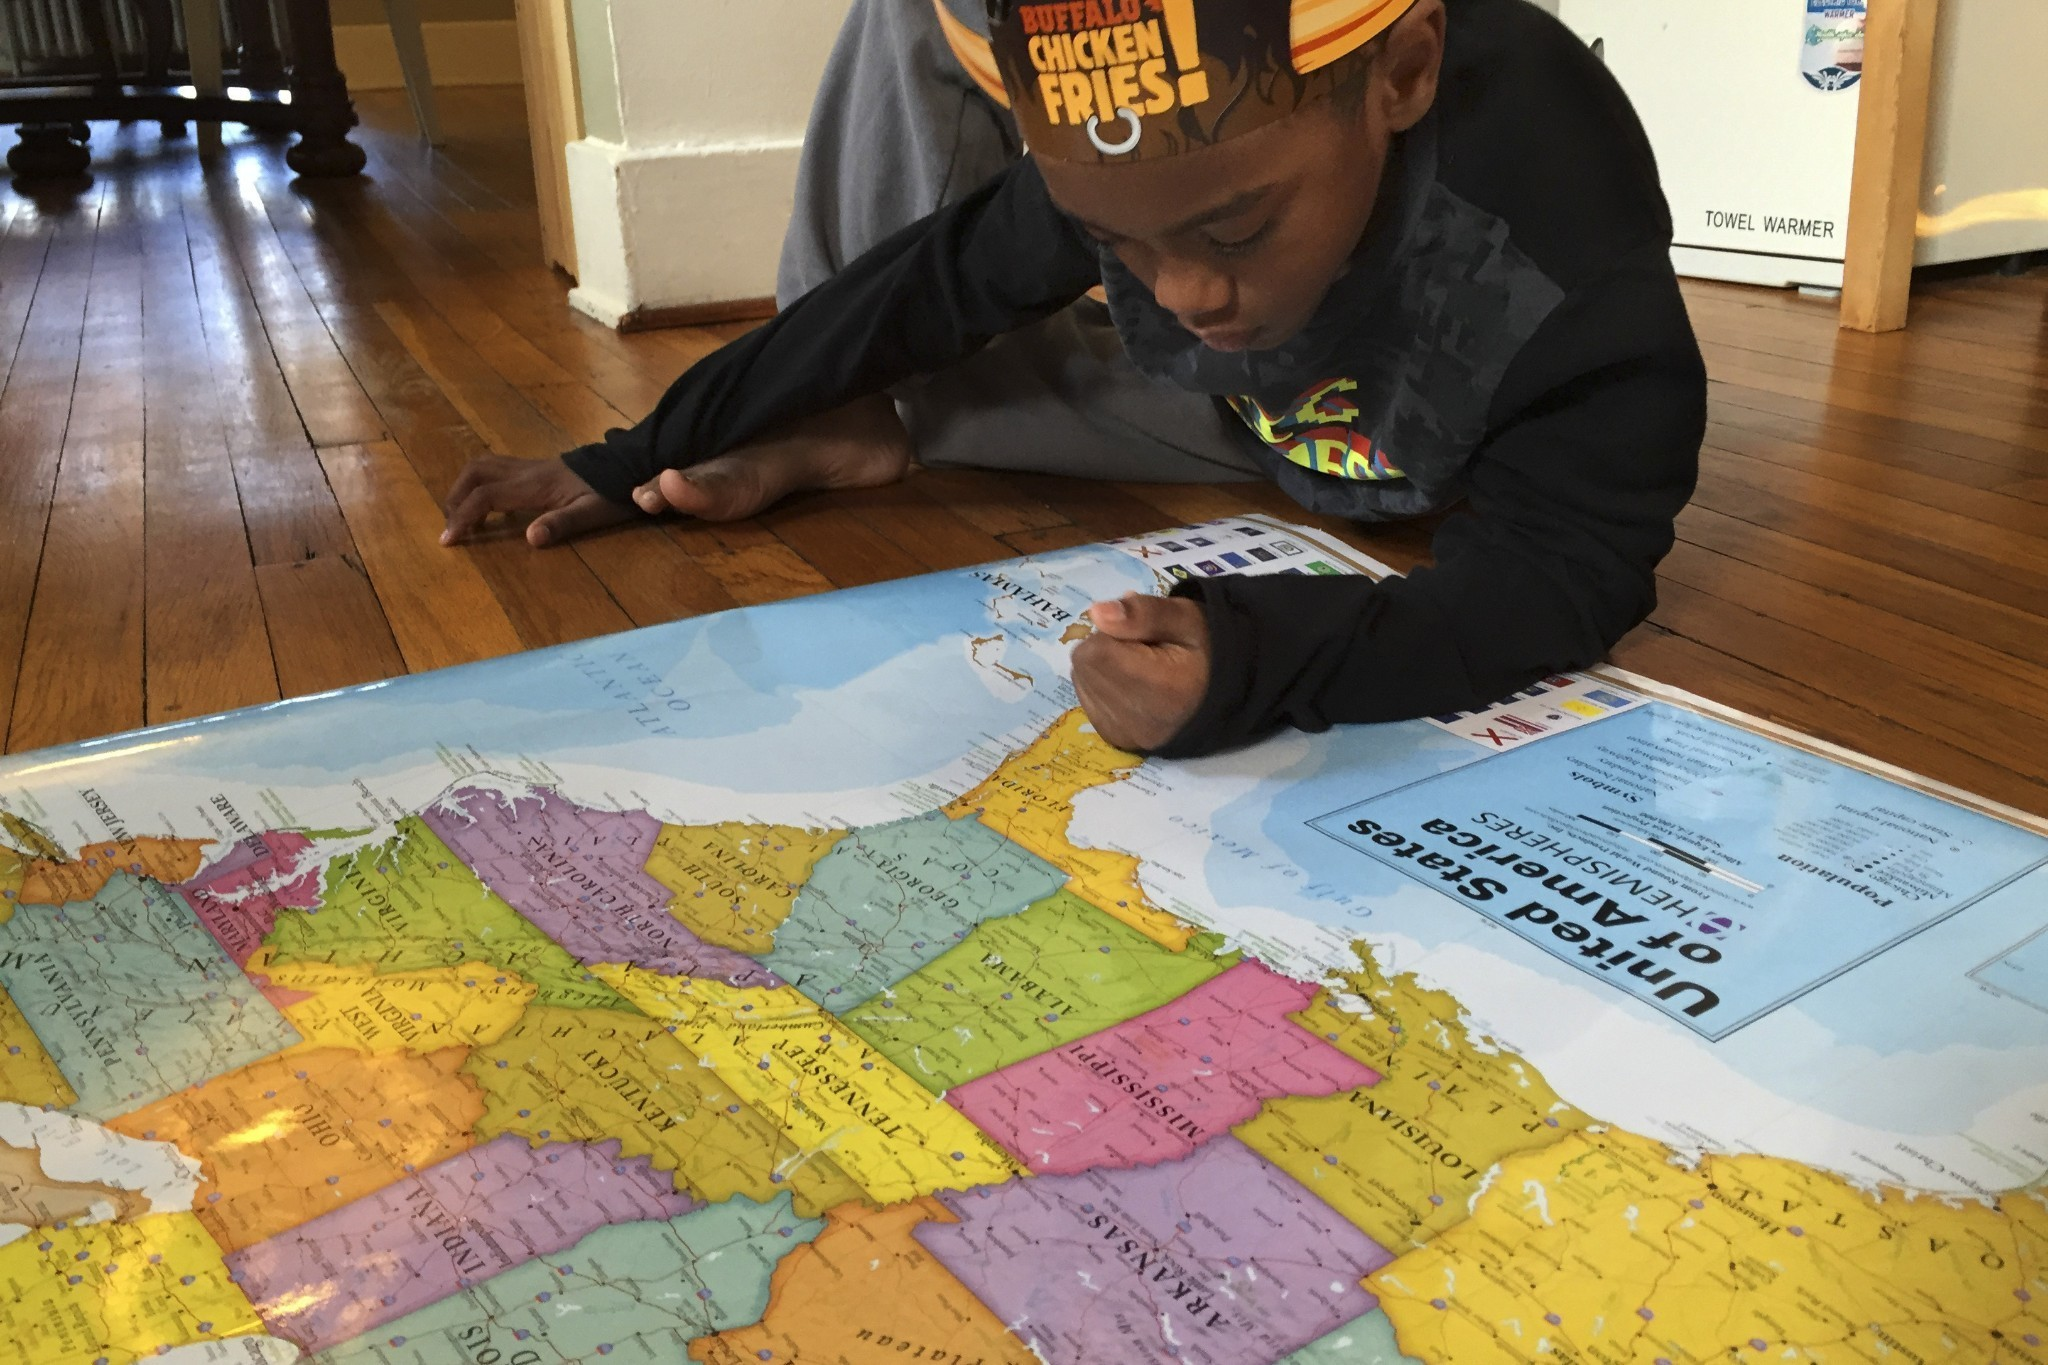 In African-American Communities, Growing Interest In Home-Schooling